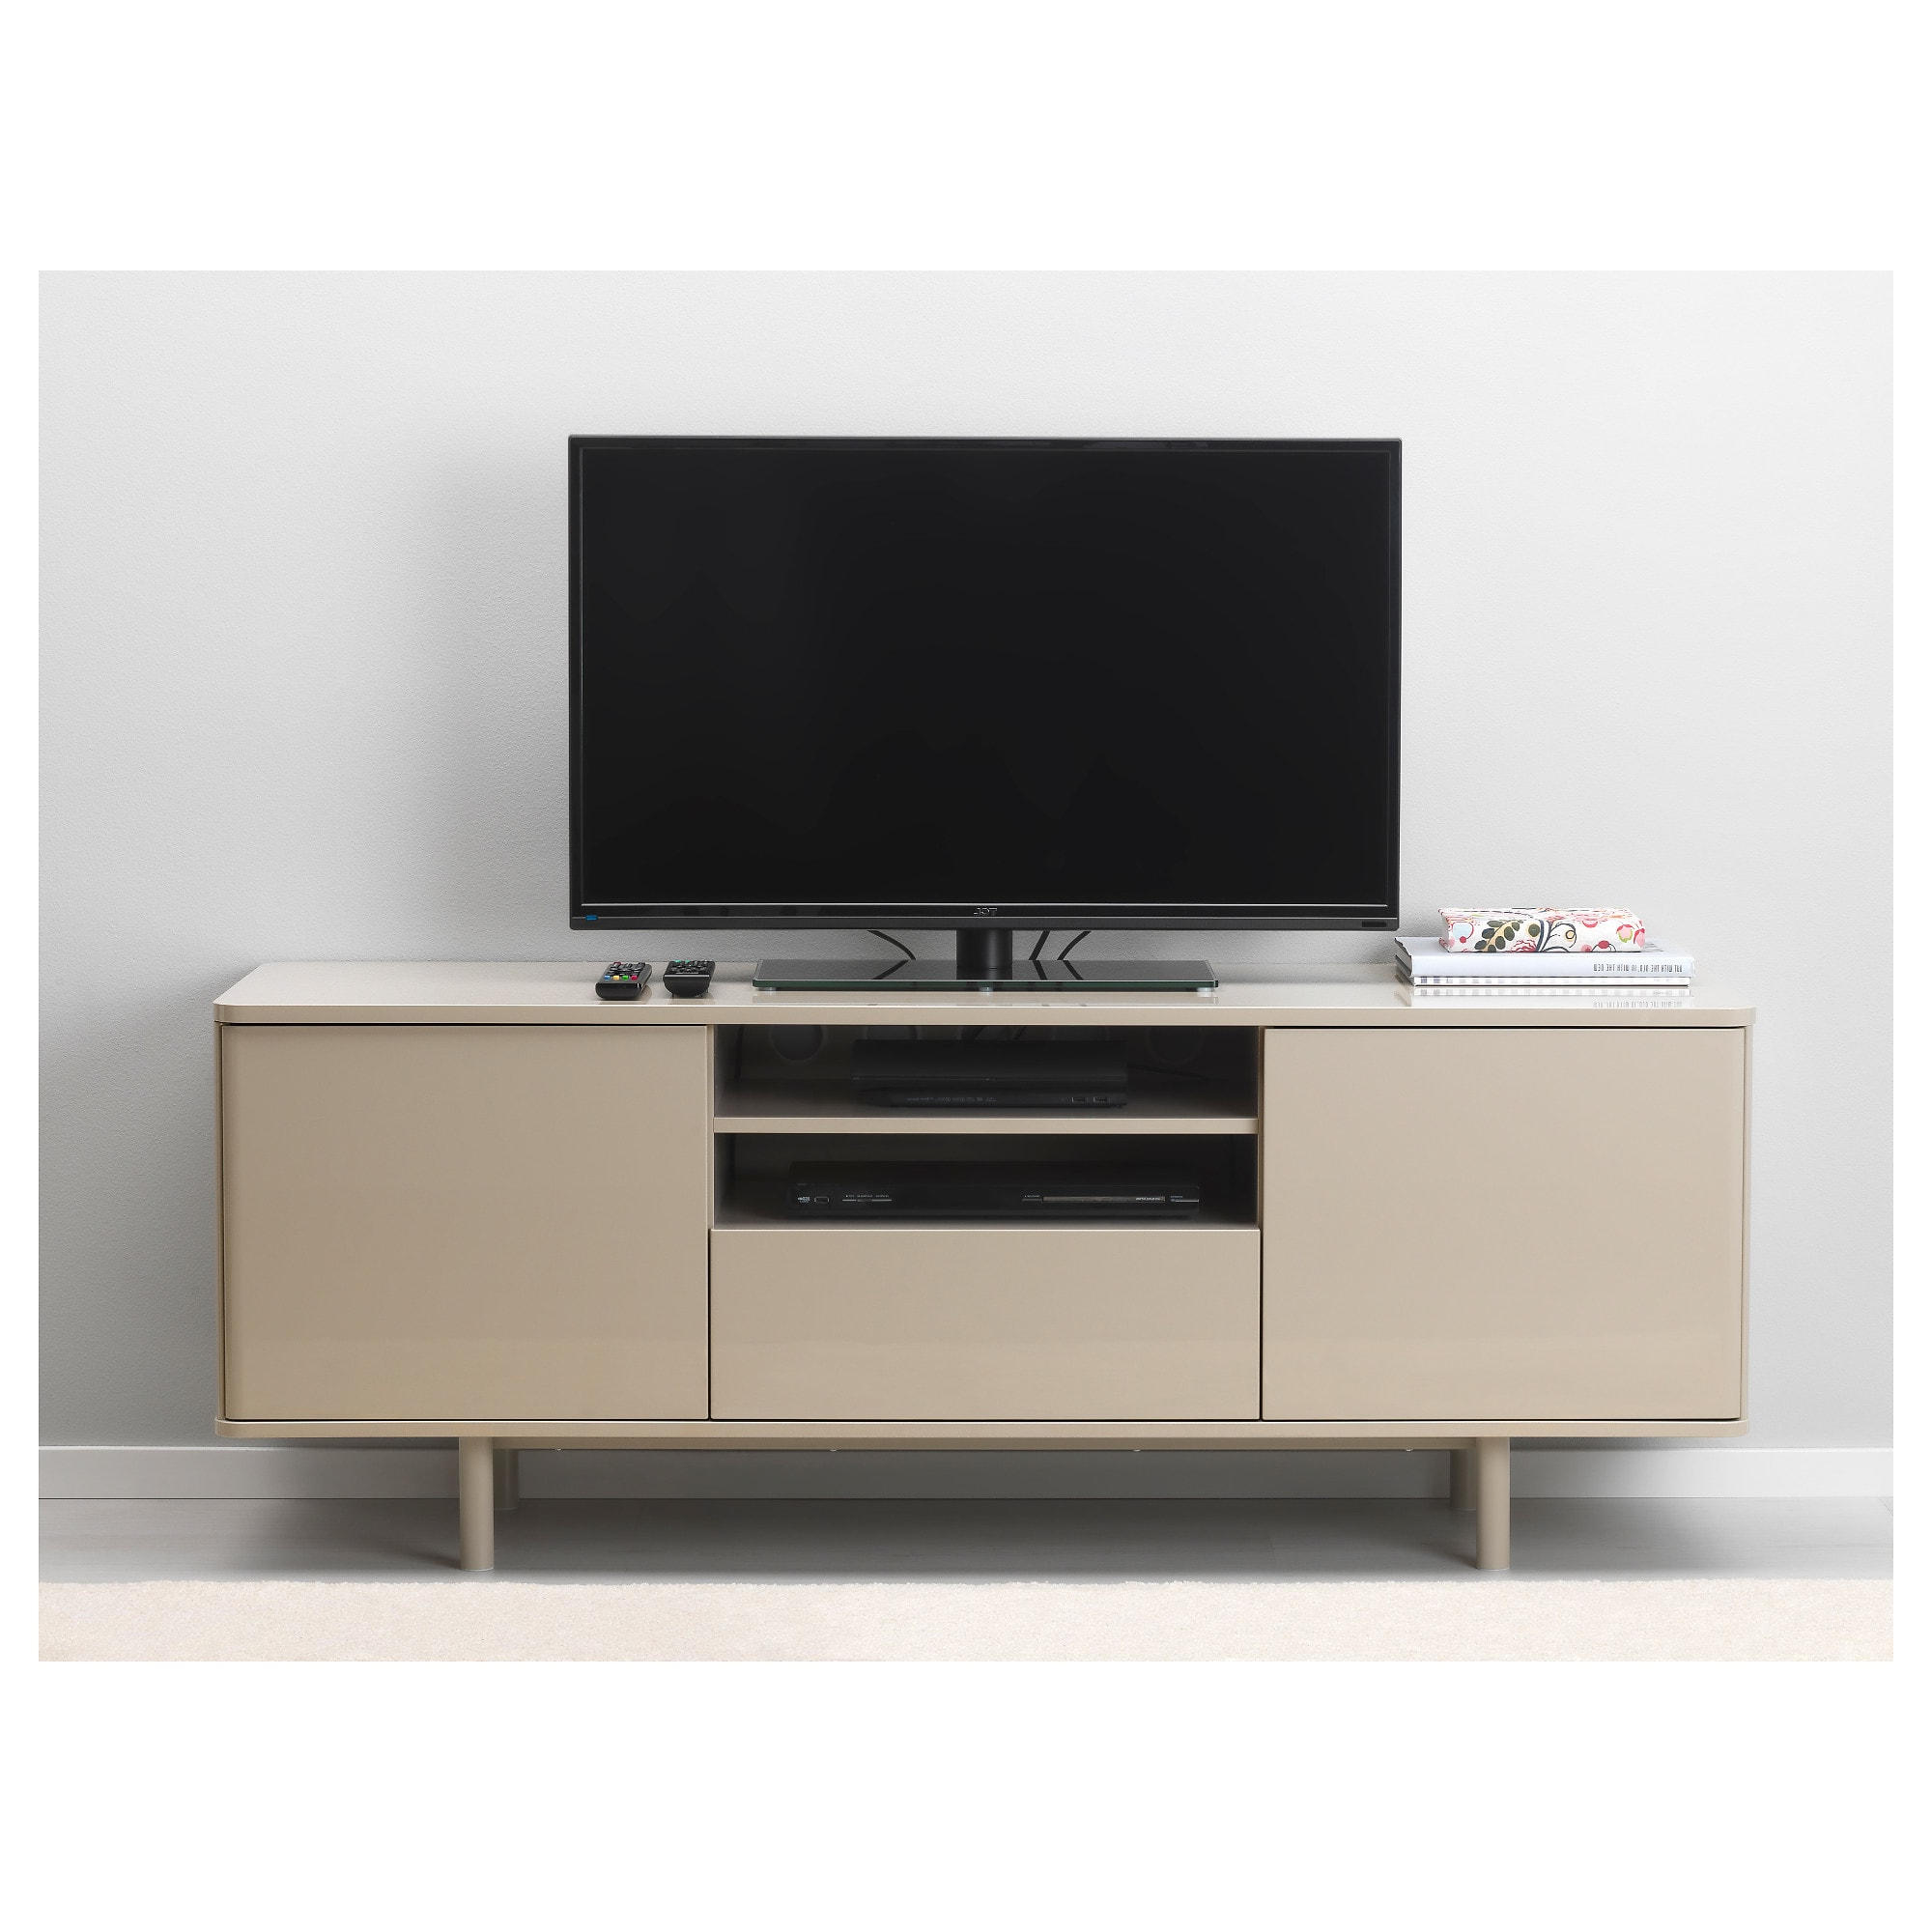 Widely Used Mostorp Tv Bench High Gloss Beige 160 X 47 X 60 Cm – Ikea With High Gloss Tv Benches (View 20 of 20)